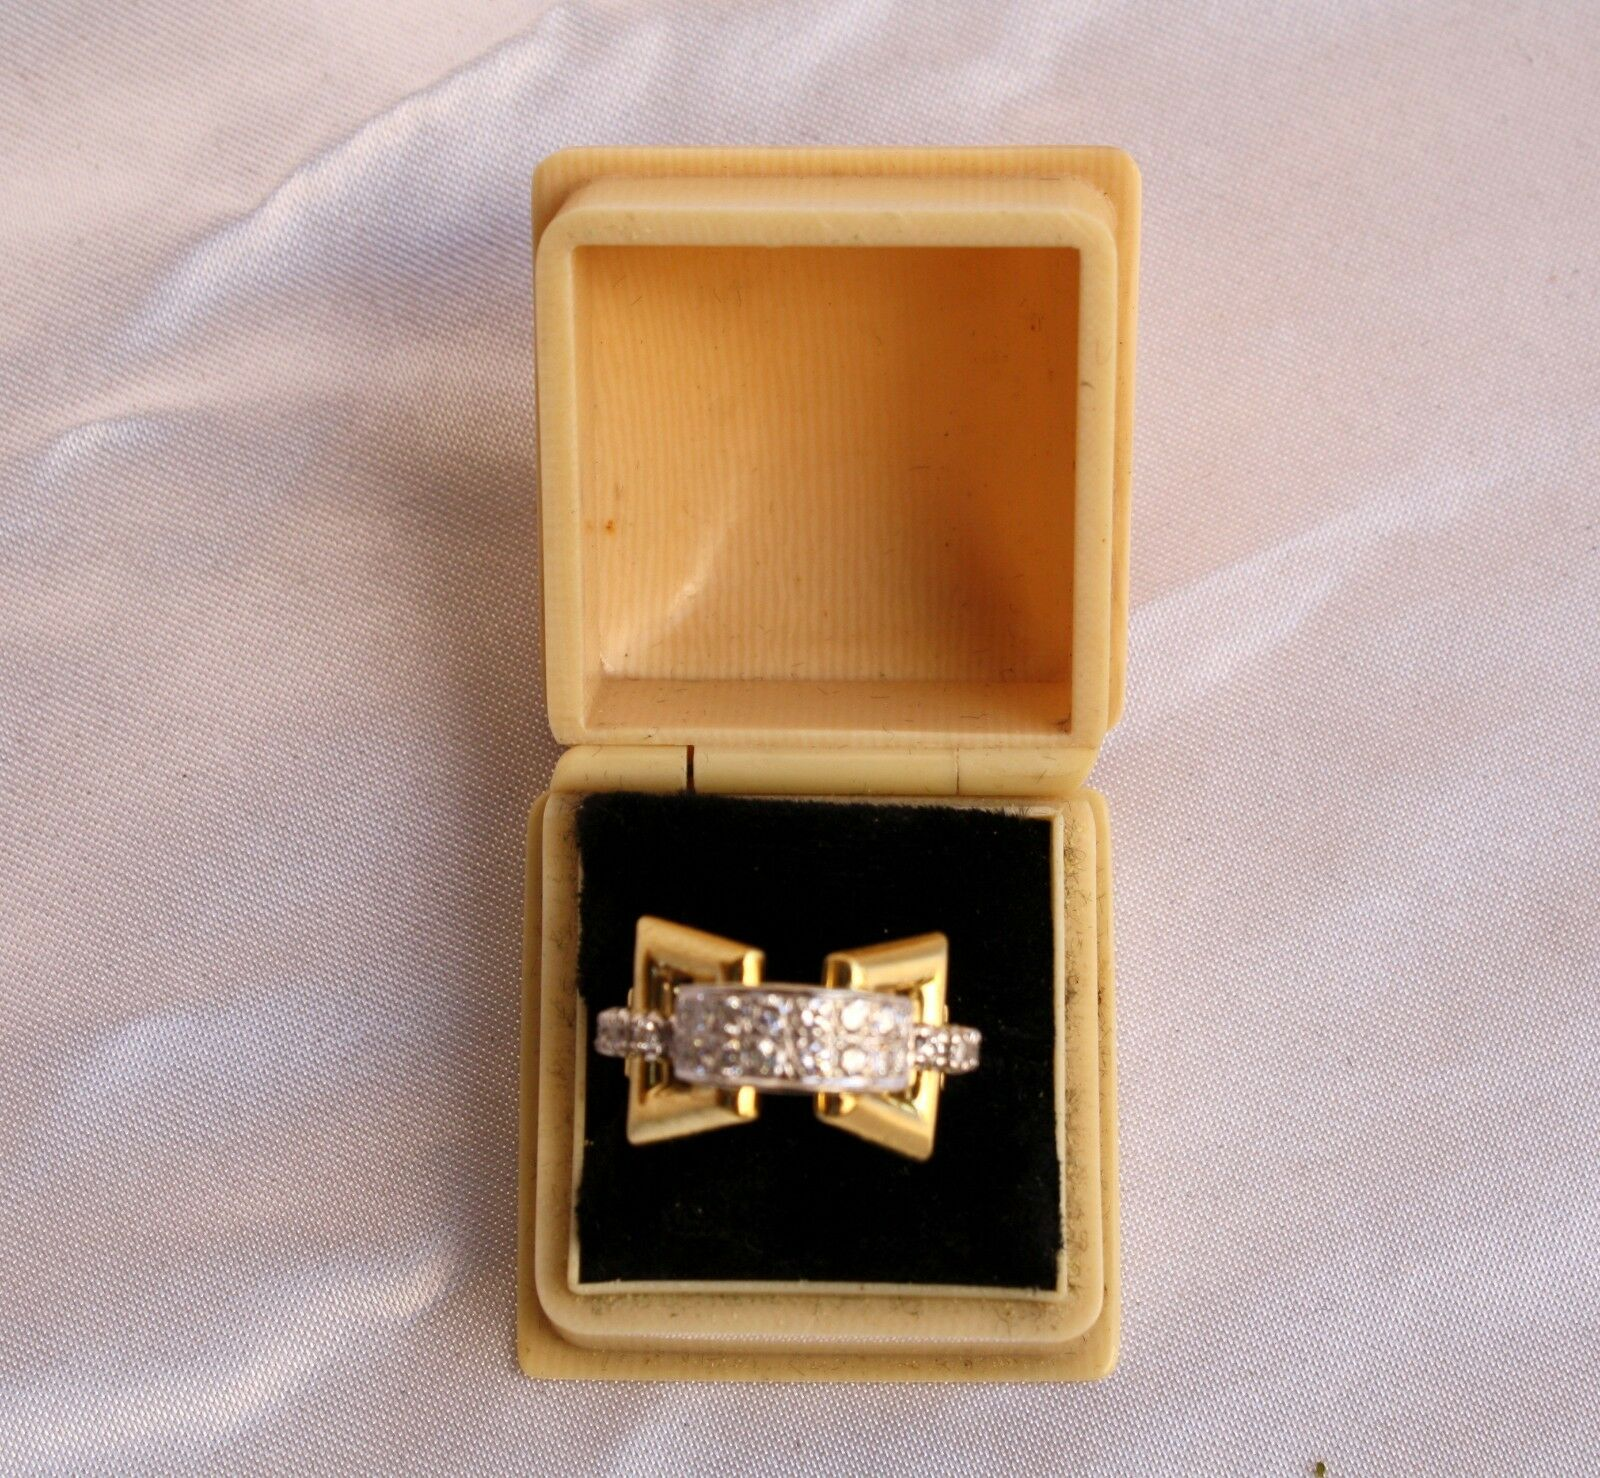 MAGNIFICENT MID 1900'S FRENCH 18K DIAMOND RING WITH CELLULOID BOX SIZE 5.25